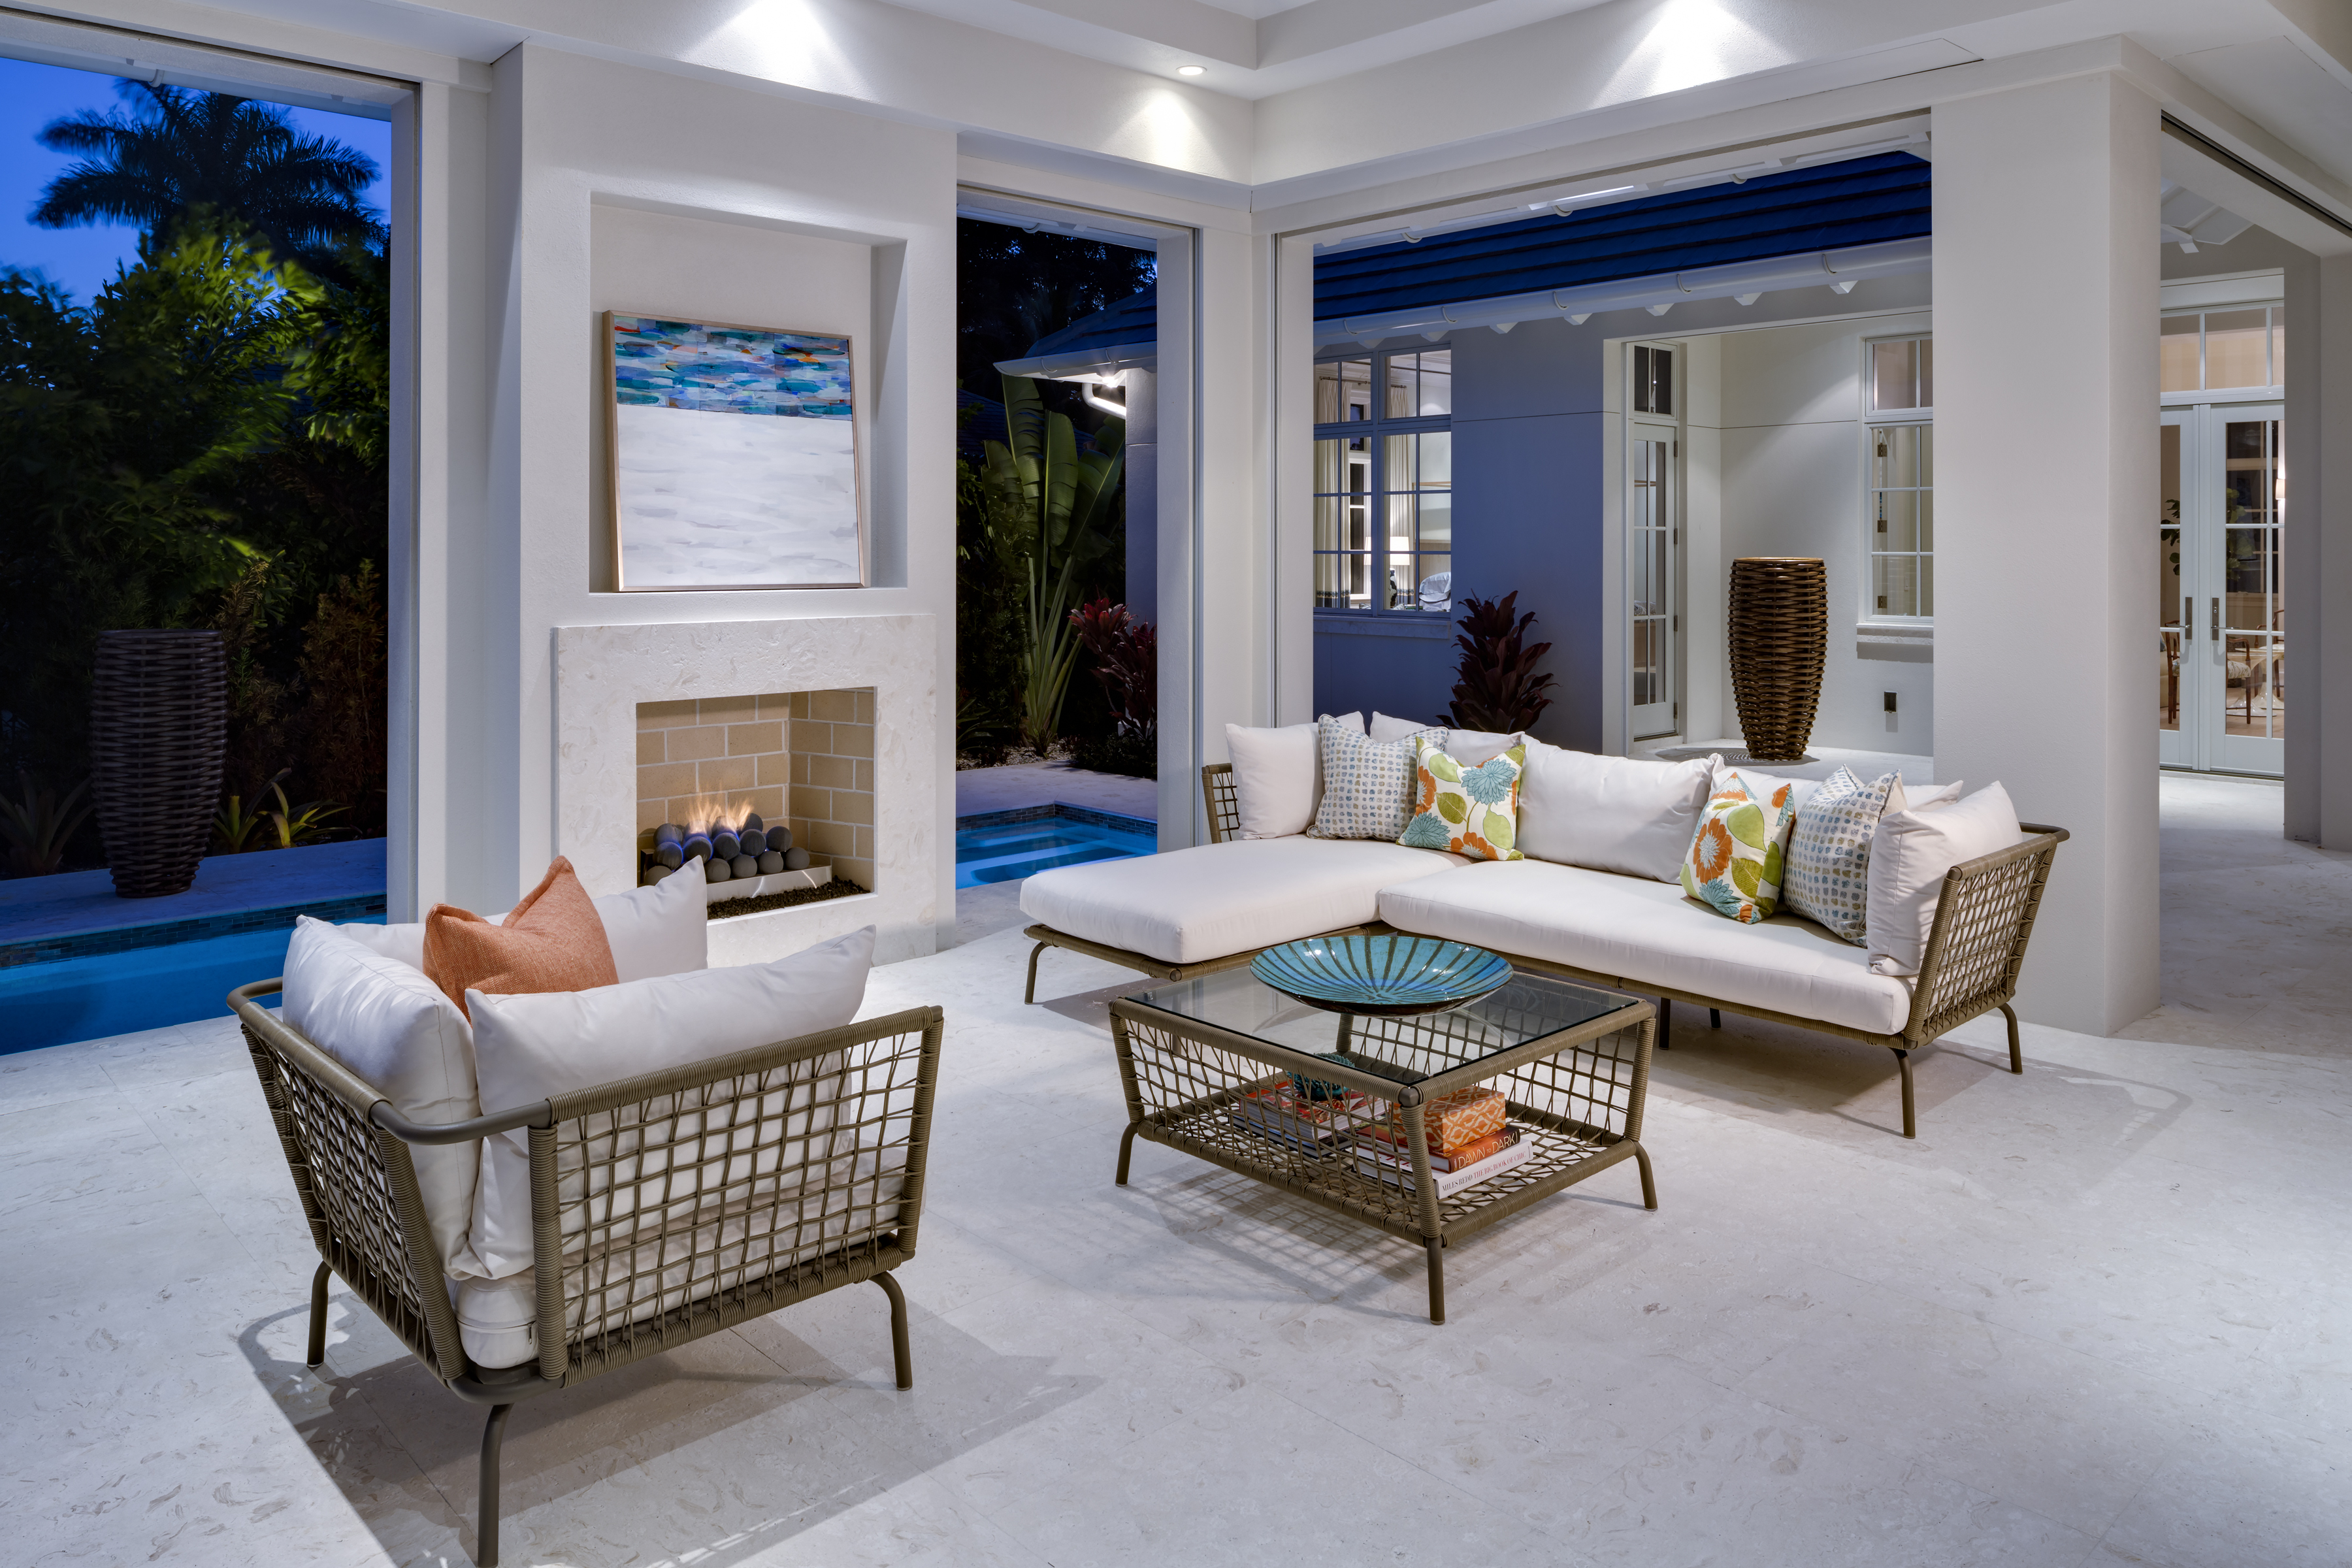 Jeffrey Fisher Home Luxury Interior Design Imagined Home Decor Outdoor Living Room Lanai